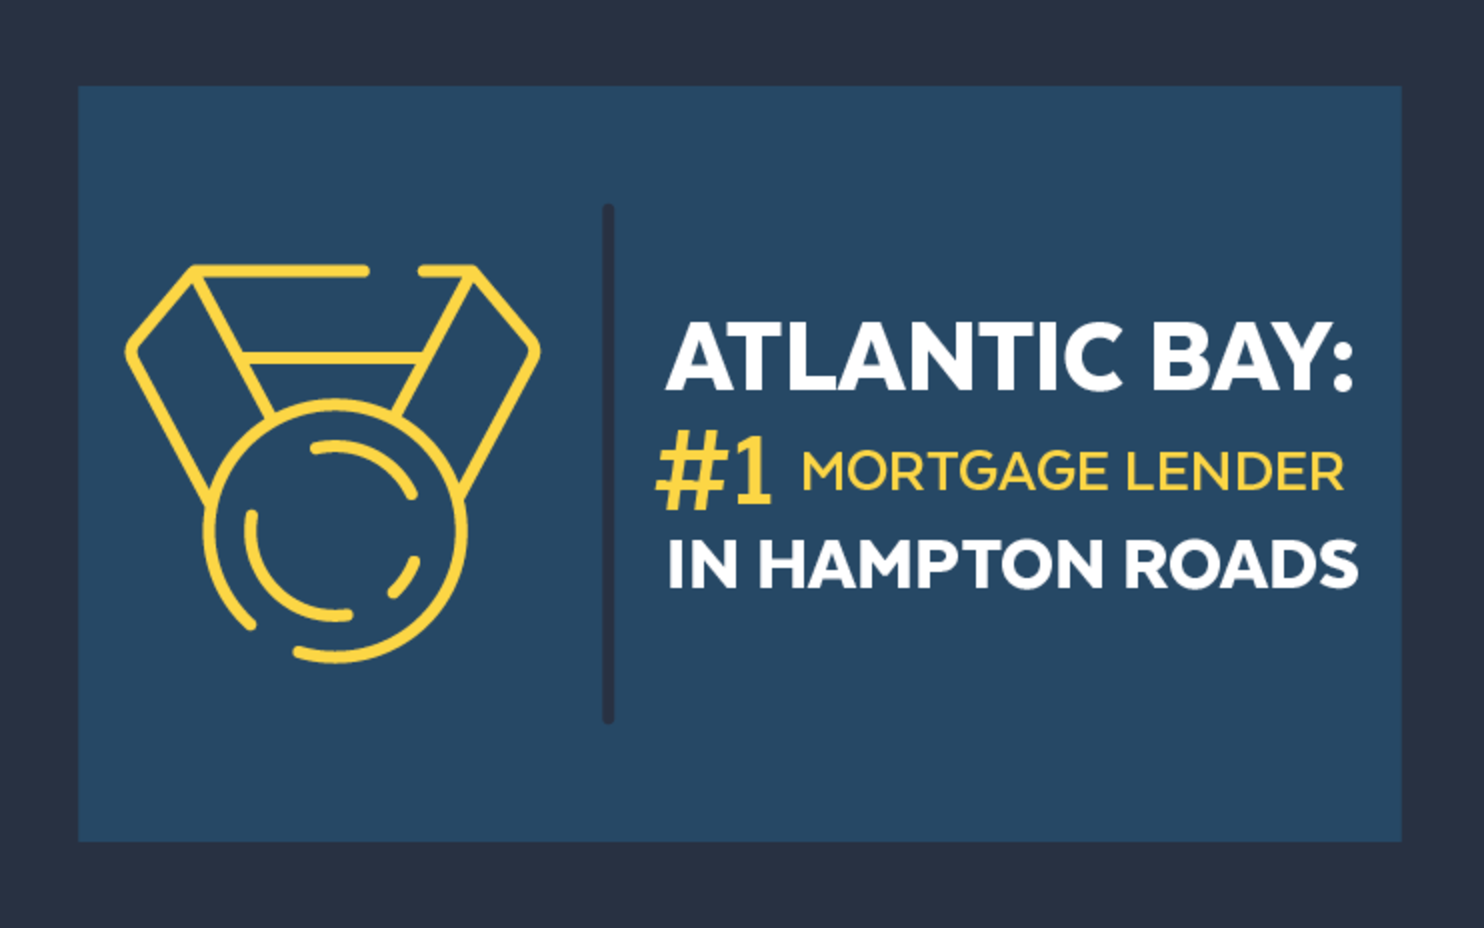 Atlantic Bay Mortgage Group Ranks #1 Mortgage Lender in Hampton Roads for Two Years in a Row